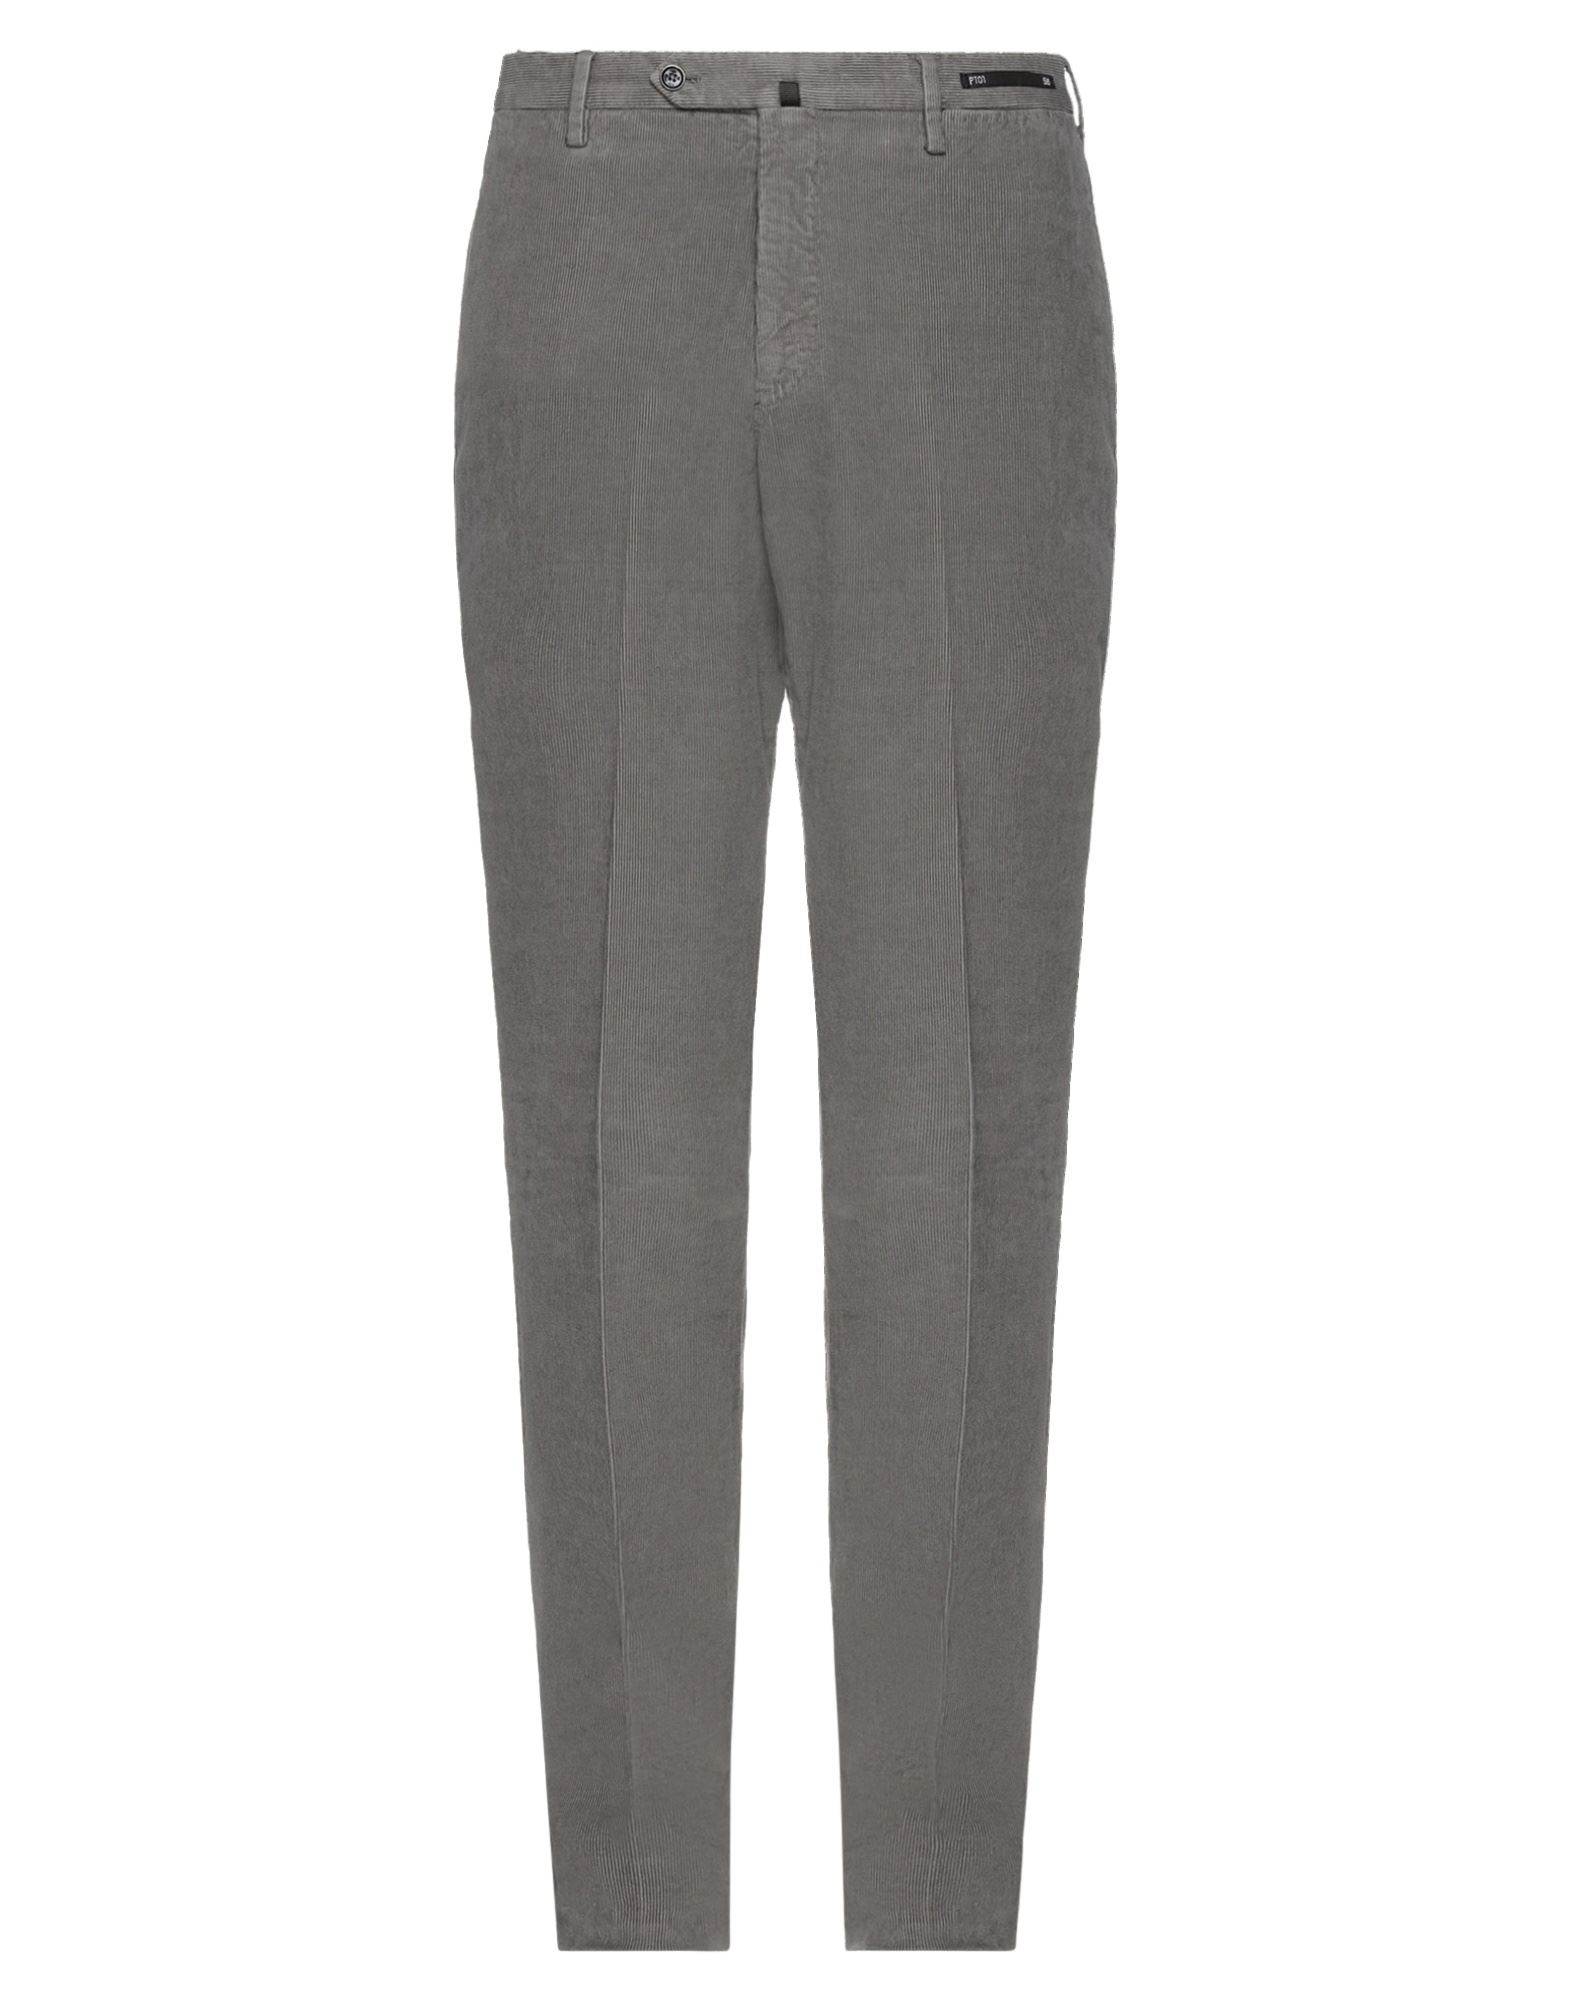 Pt Torino Casual Pants In Gray